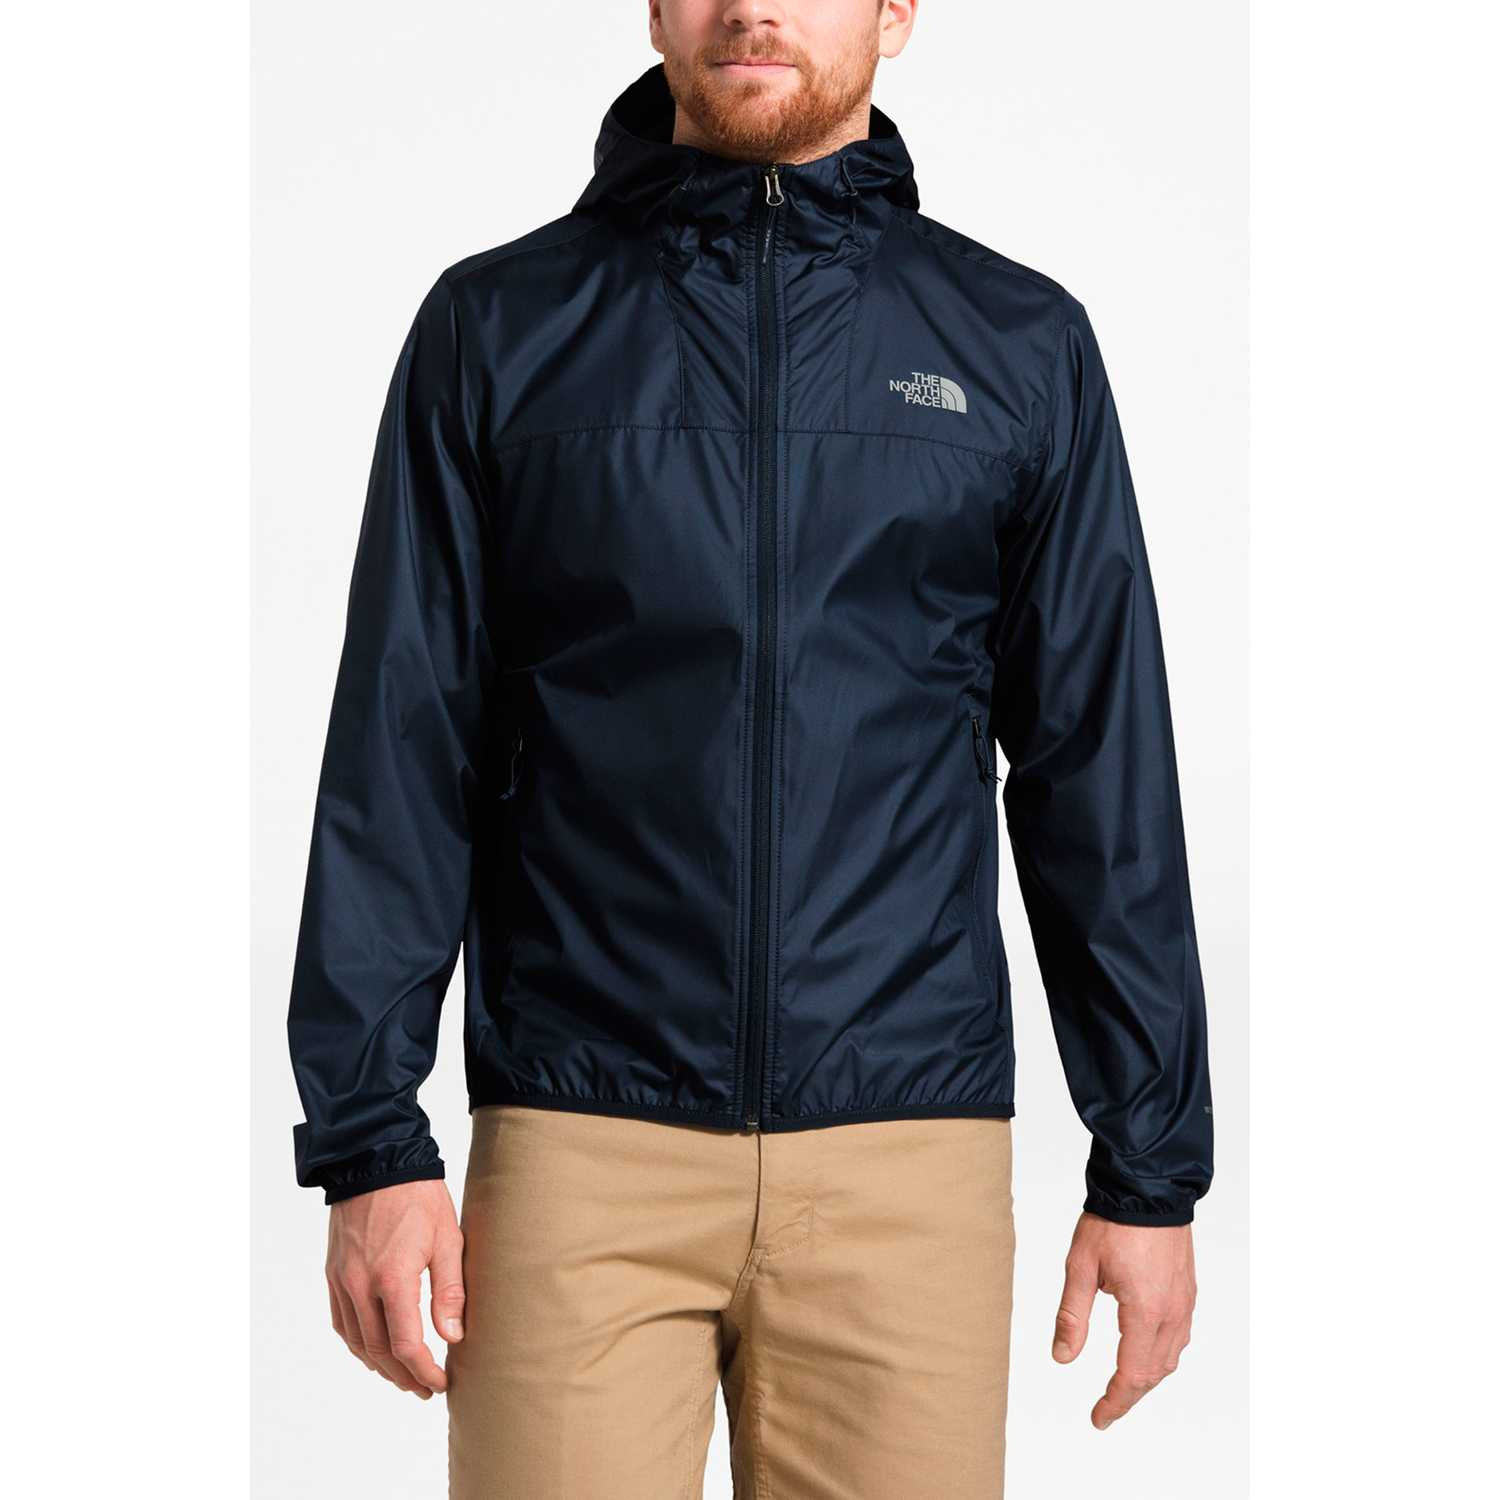 Casaca de Hombre The North Face Navy m cyclone 2.0 hoodie